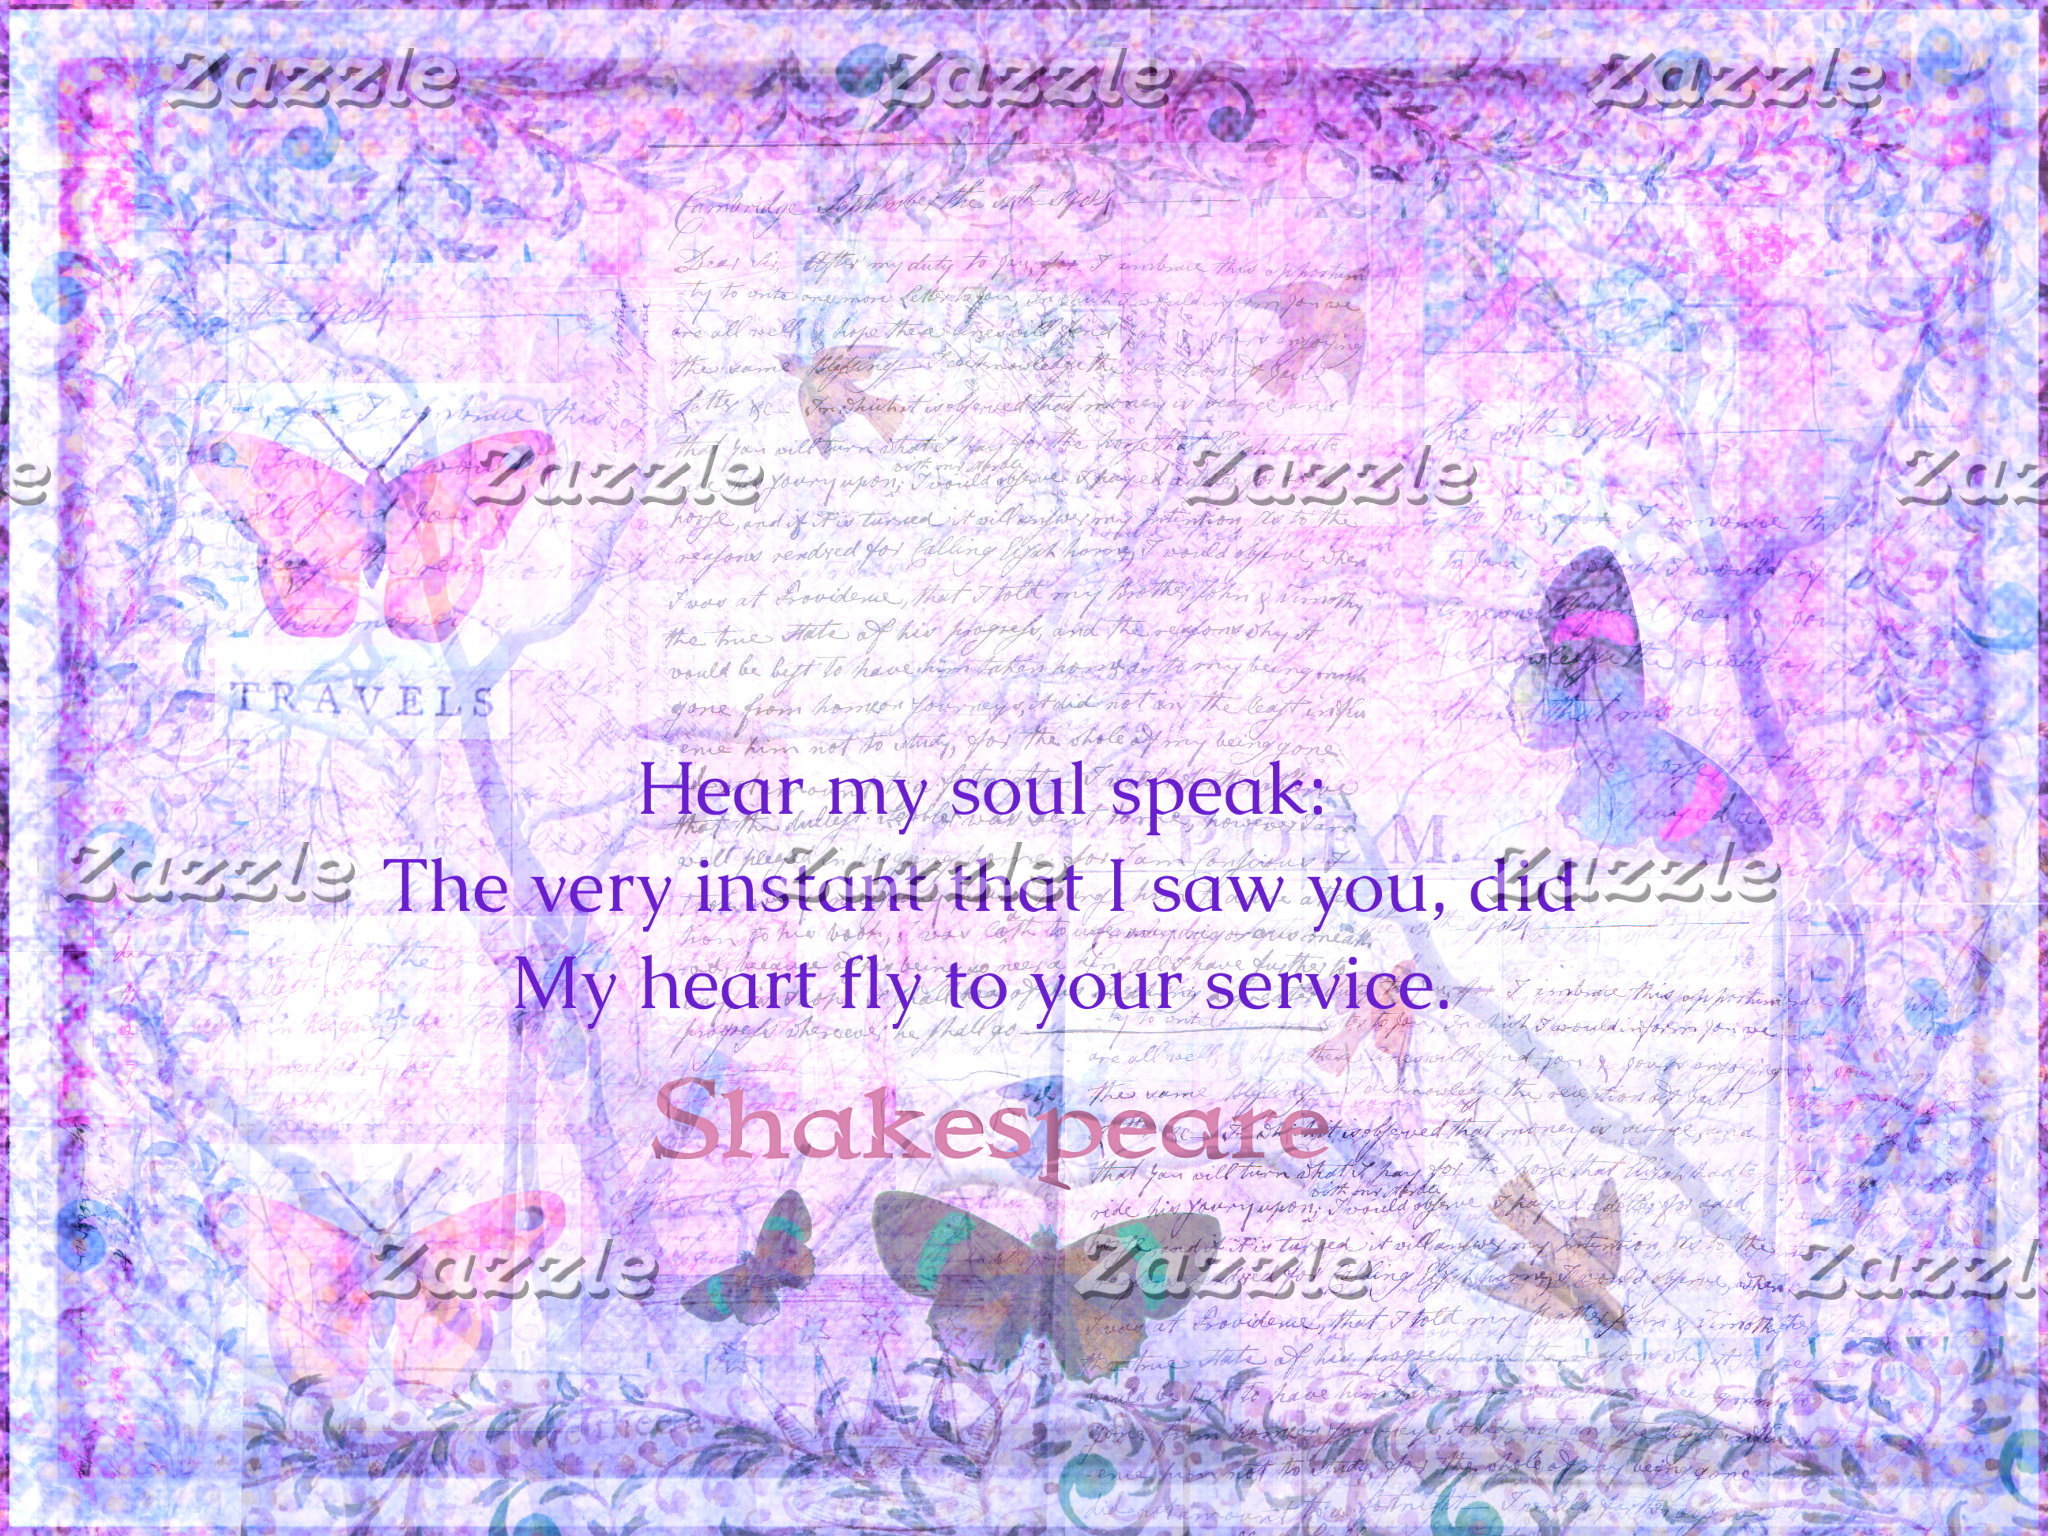 Hear my soul speak:  The very instant that I saw